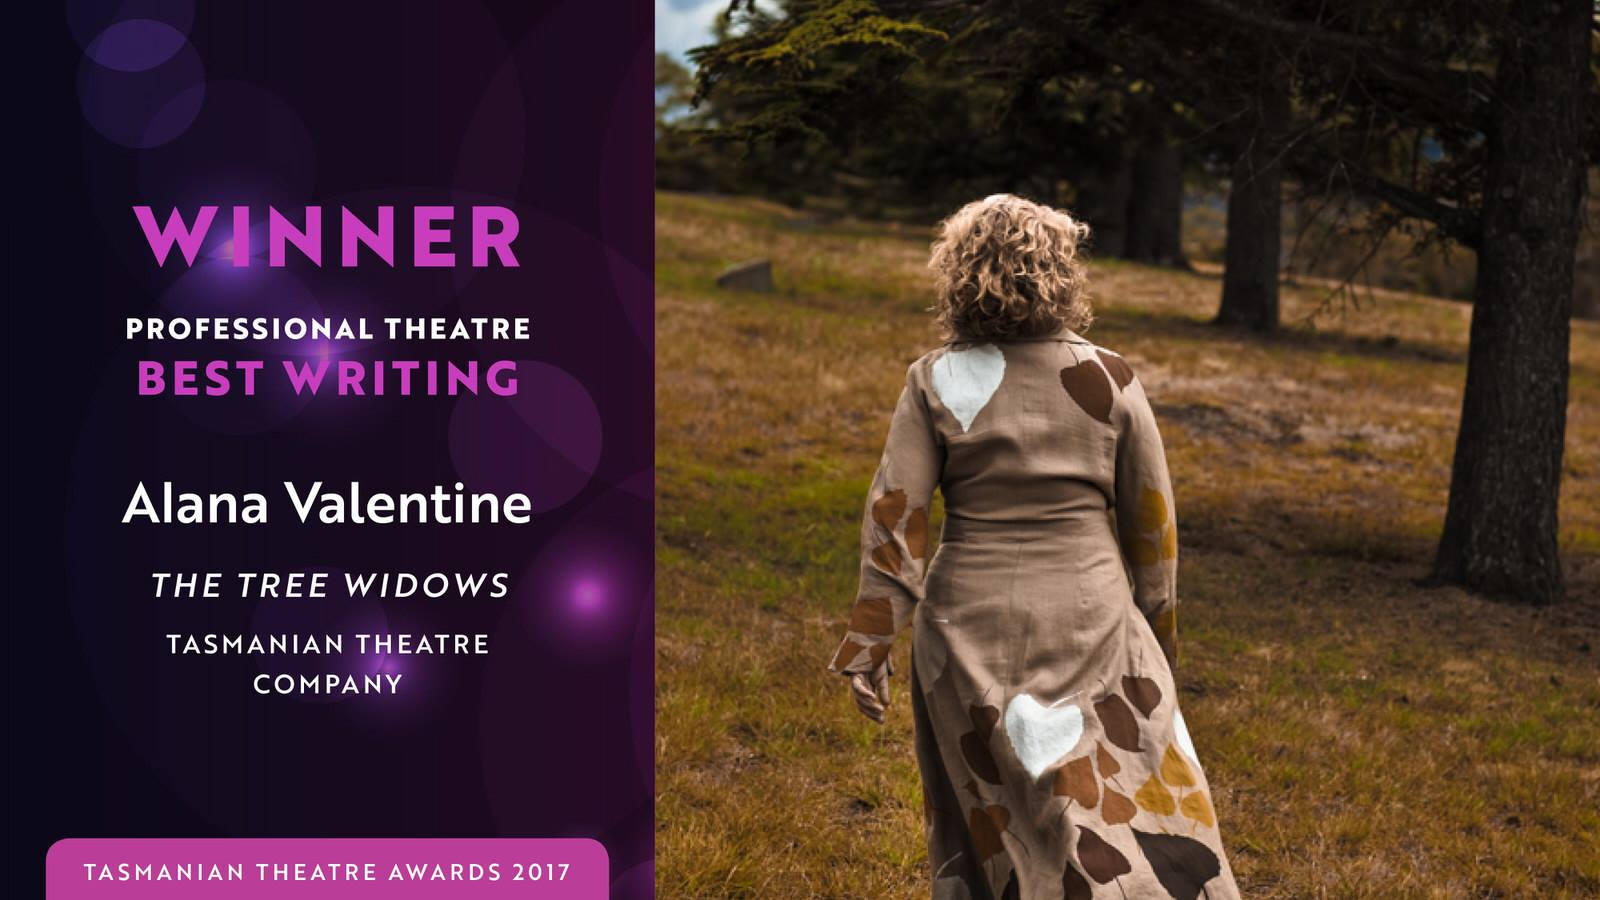 Tasmanian Theatre Awards 2017 - winner - best writing